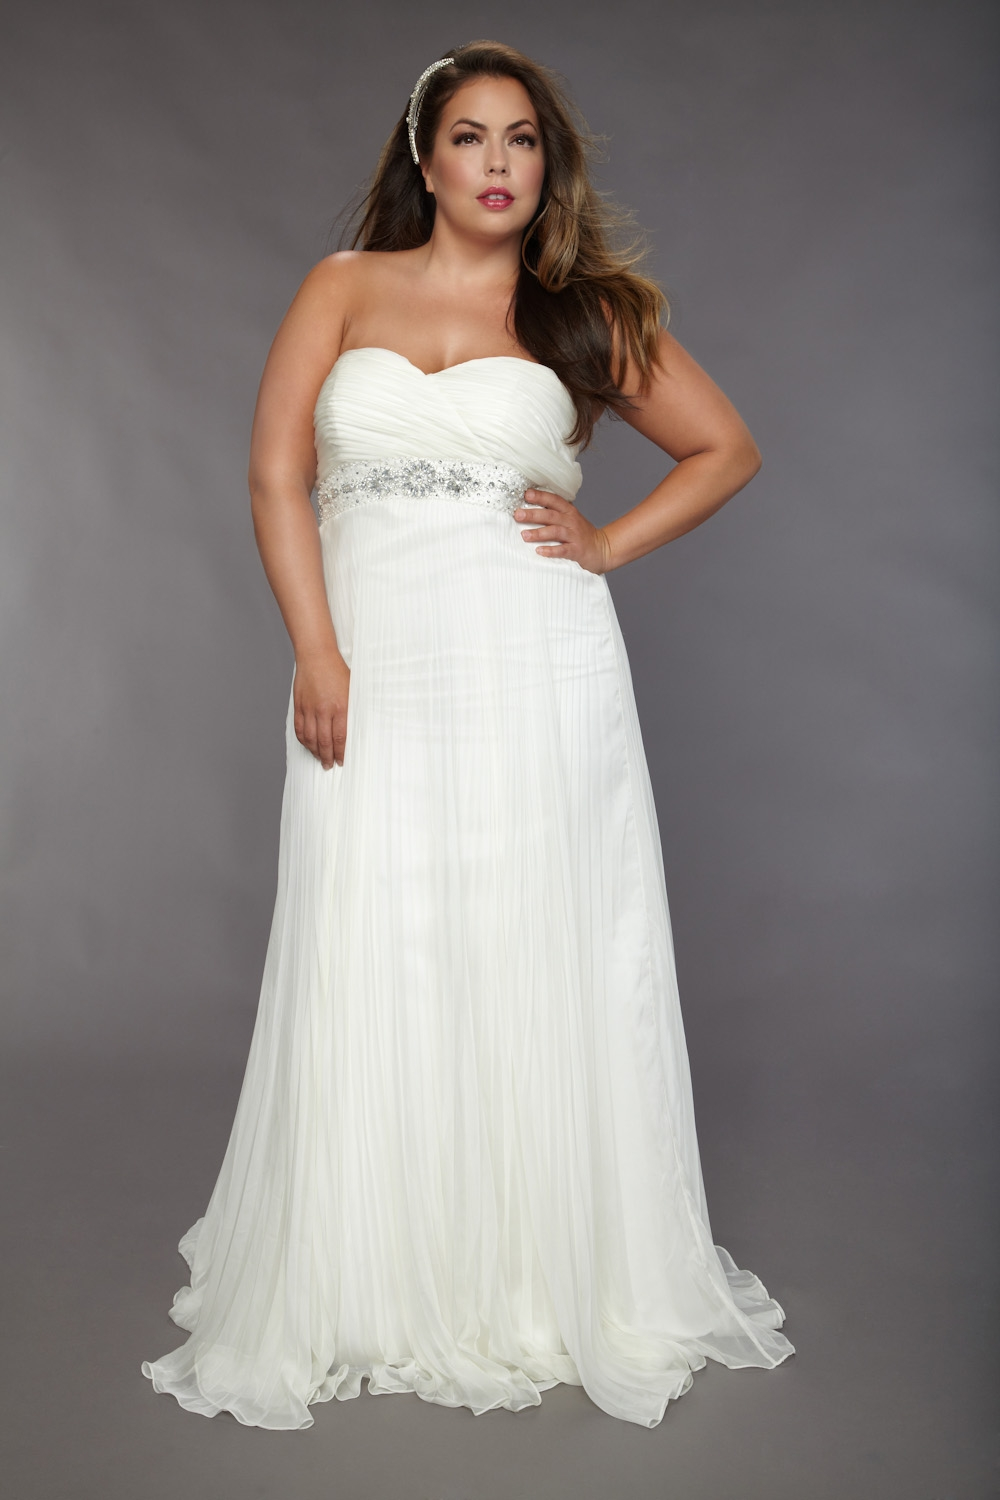 wedding trend ideas plus size beach wedding dresses With plus size beach wedding dresses 2013